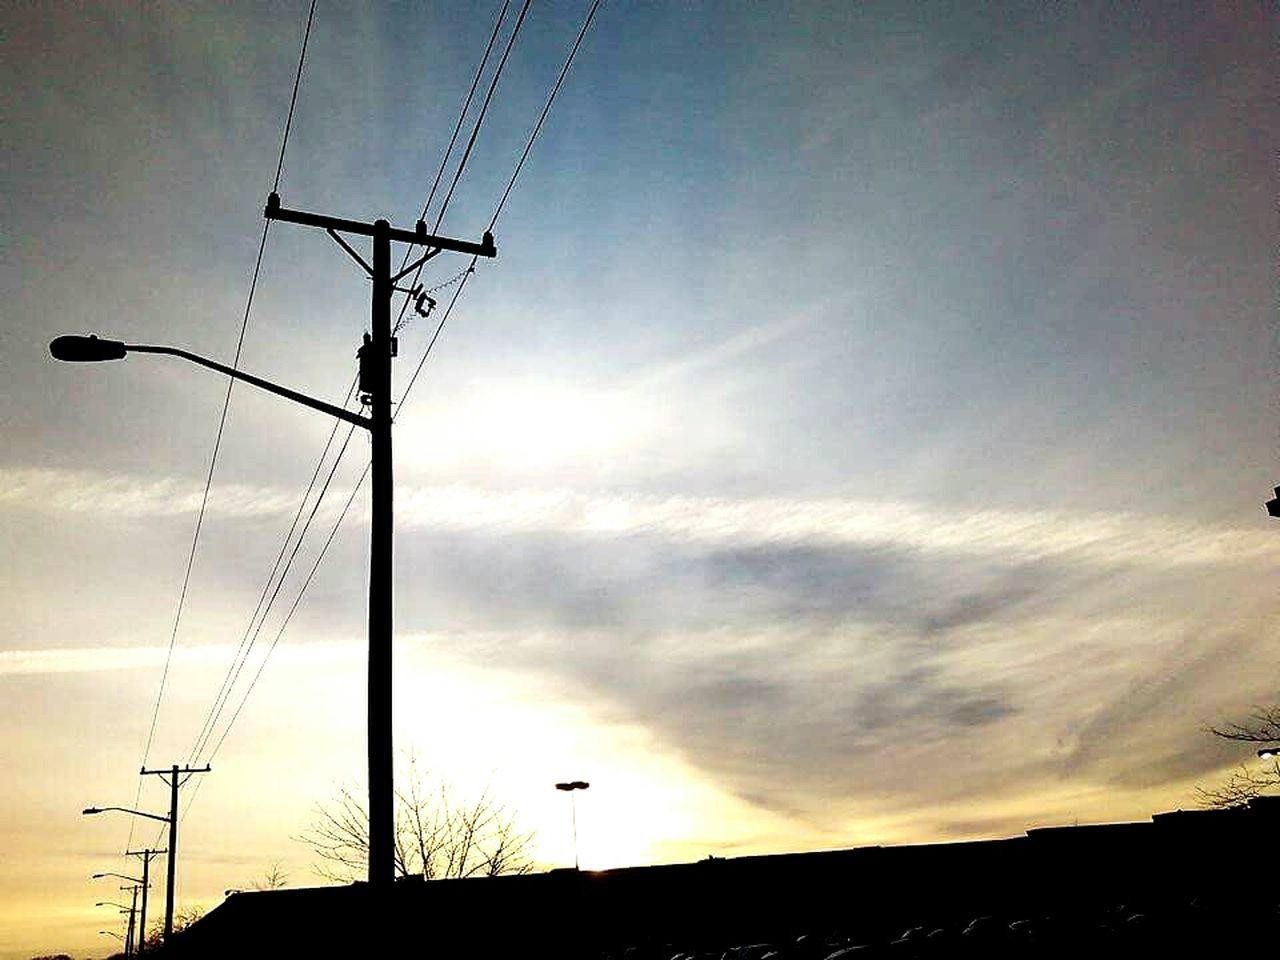 cable, connection, silhouette, electricity, technology, sky, fuel and power generation, power line, electricity pylon, power supply, low angle view, cloud - sky, communication, sunset, no people, outdoors, telephone line, rural scene, nature, day